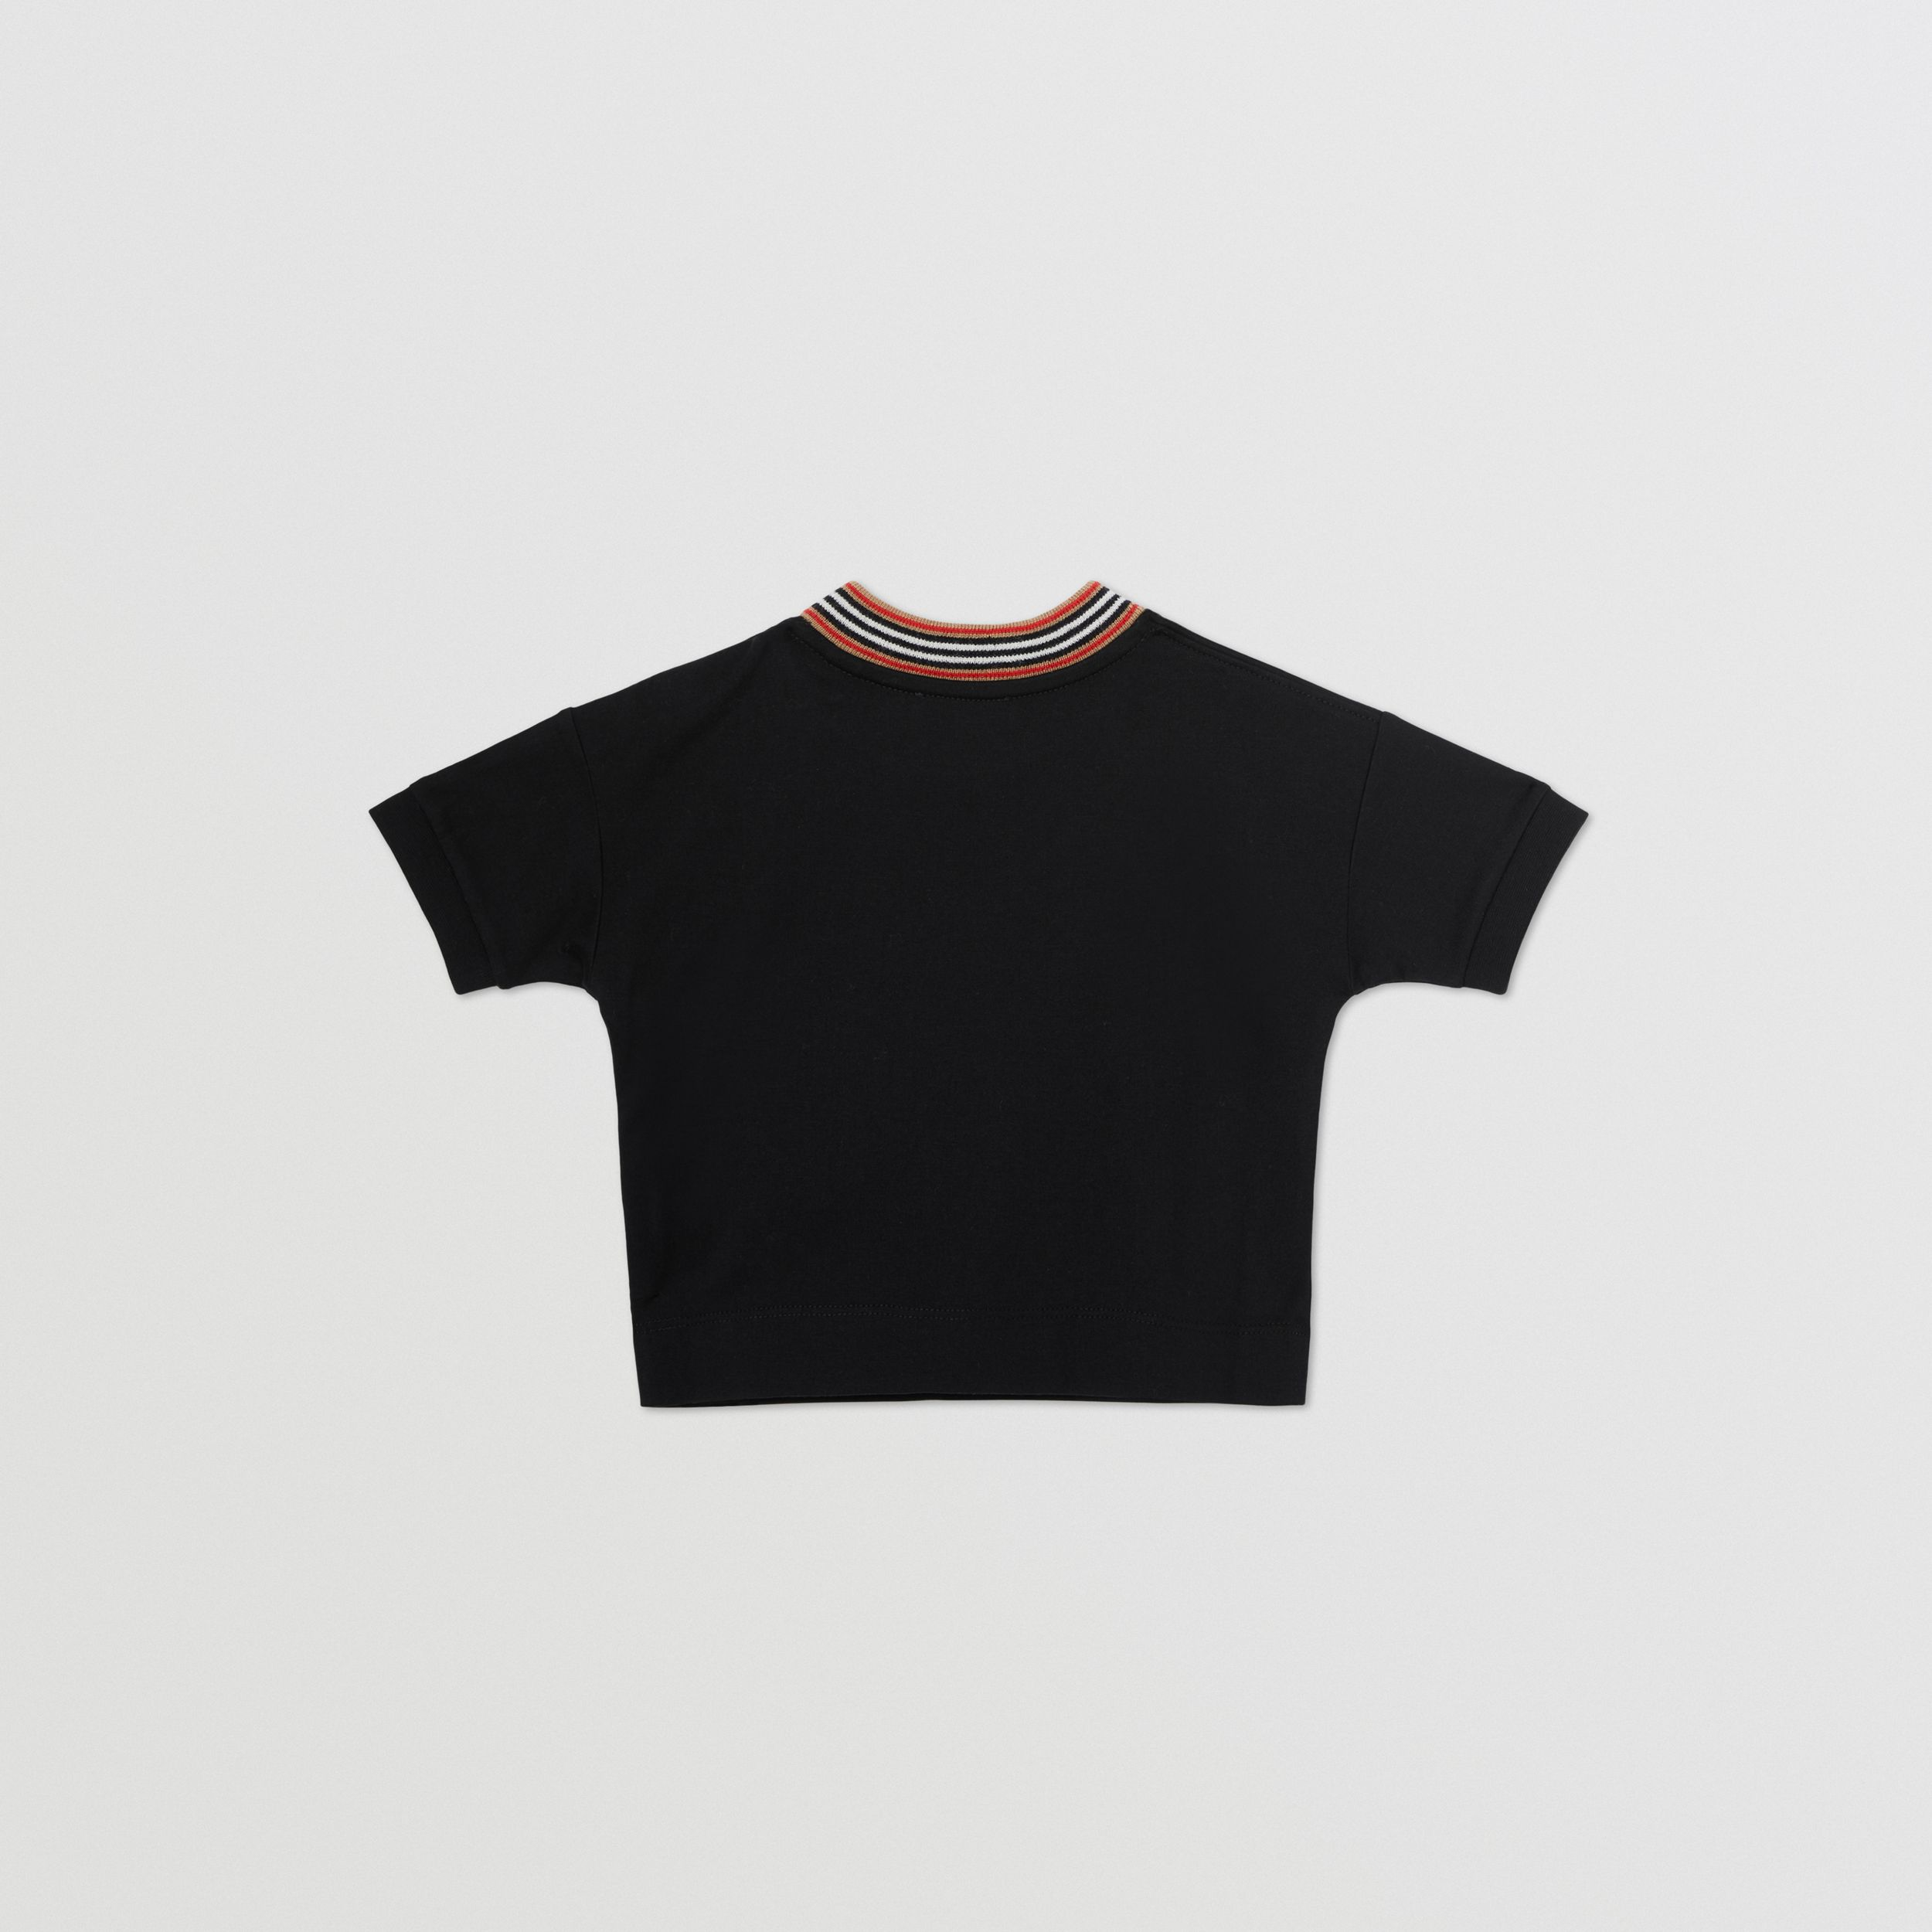 Cake Print Cotton T-shirt in Black - Children | Burberry - 4